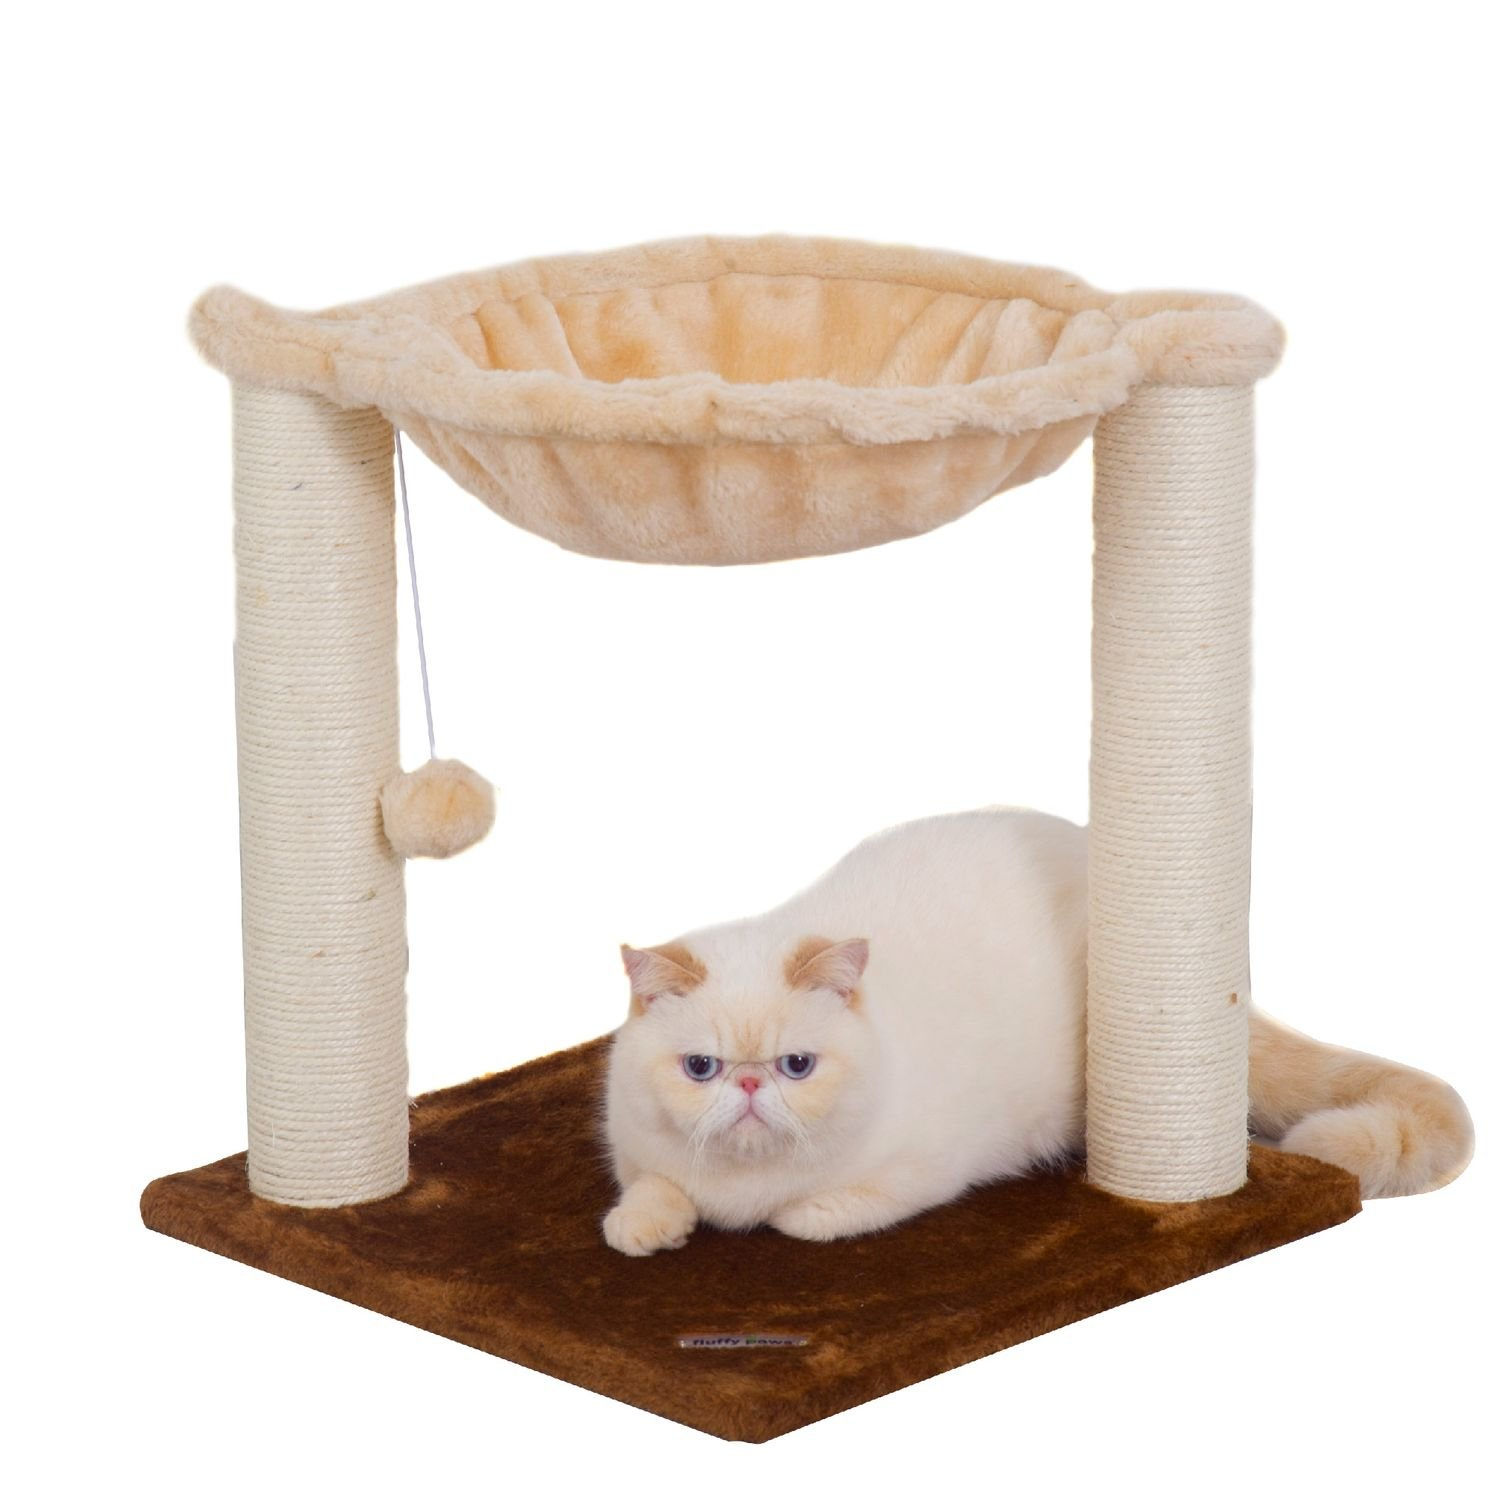 Fluffy Paws Cat Tree House, Multi 2 Level, with Scratching Post Durable Sisal Wrapped, Sleeping Hammock Pet Bed and Kitten Toy Ball Furniture [18'' Height] w/Carpeted Based Play Area, Beige